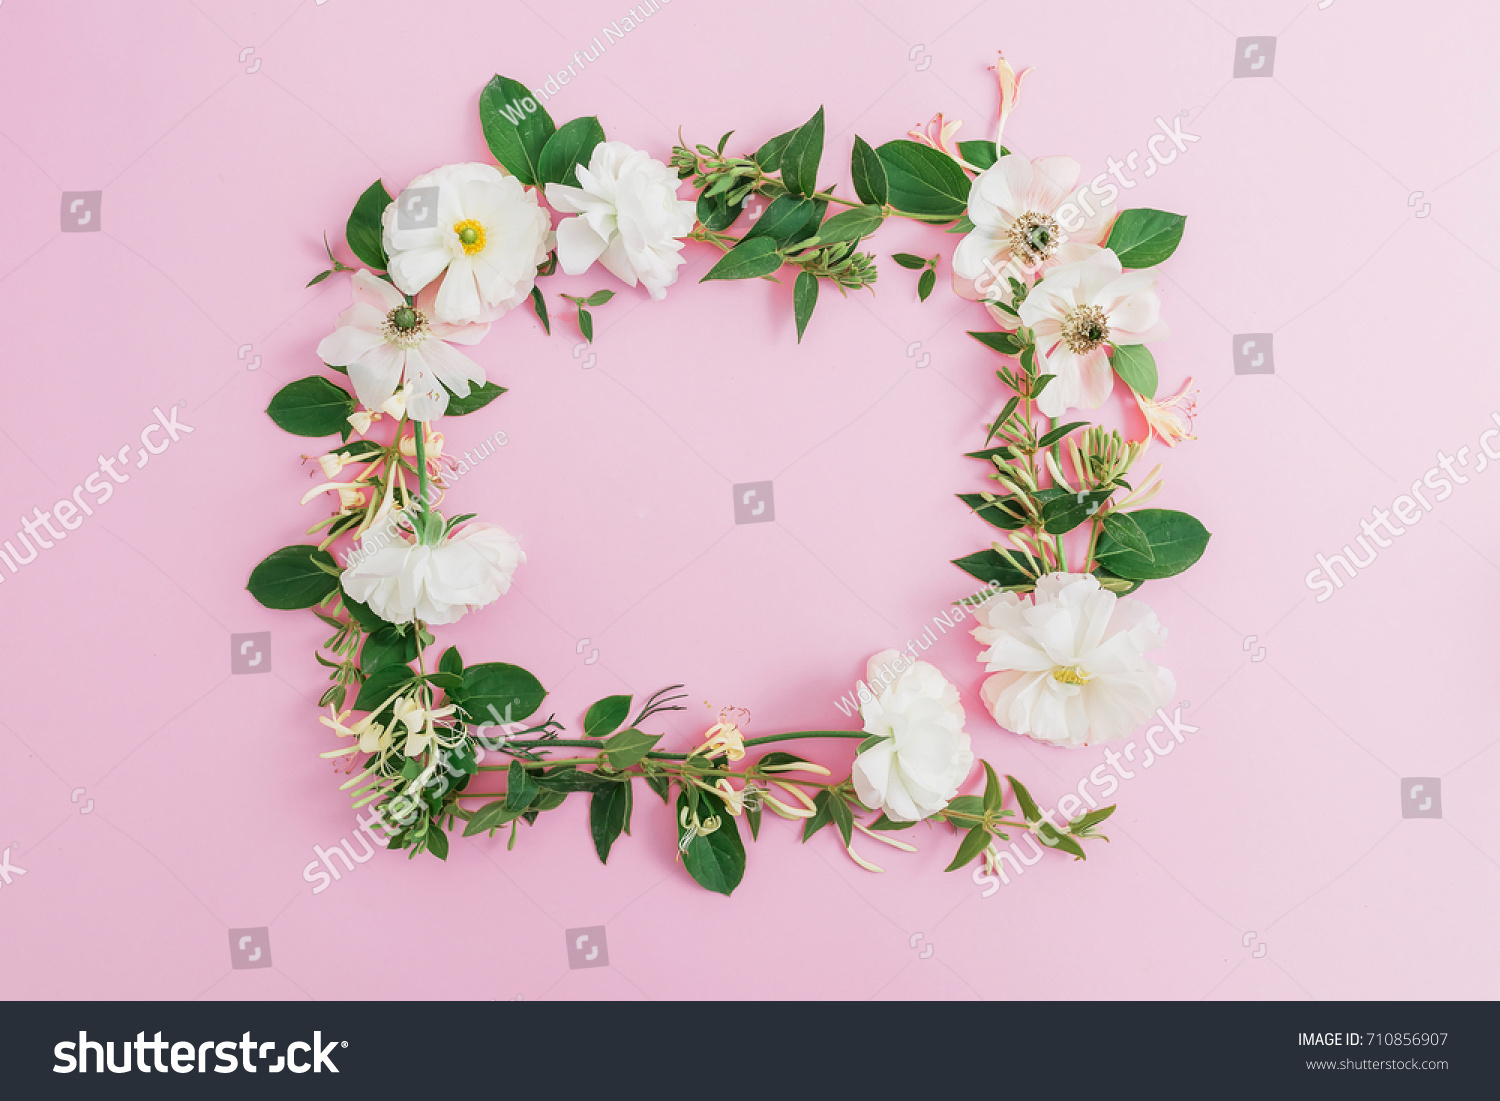 Floral Frame White Flowers On Pink Stock Photo Edit Now 710856907